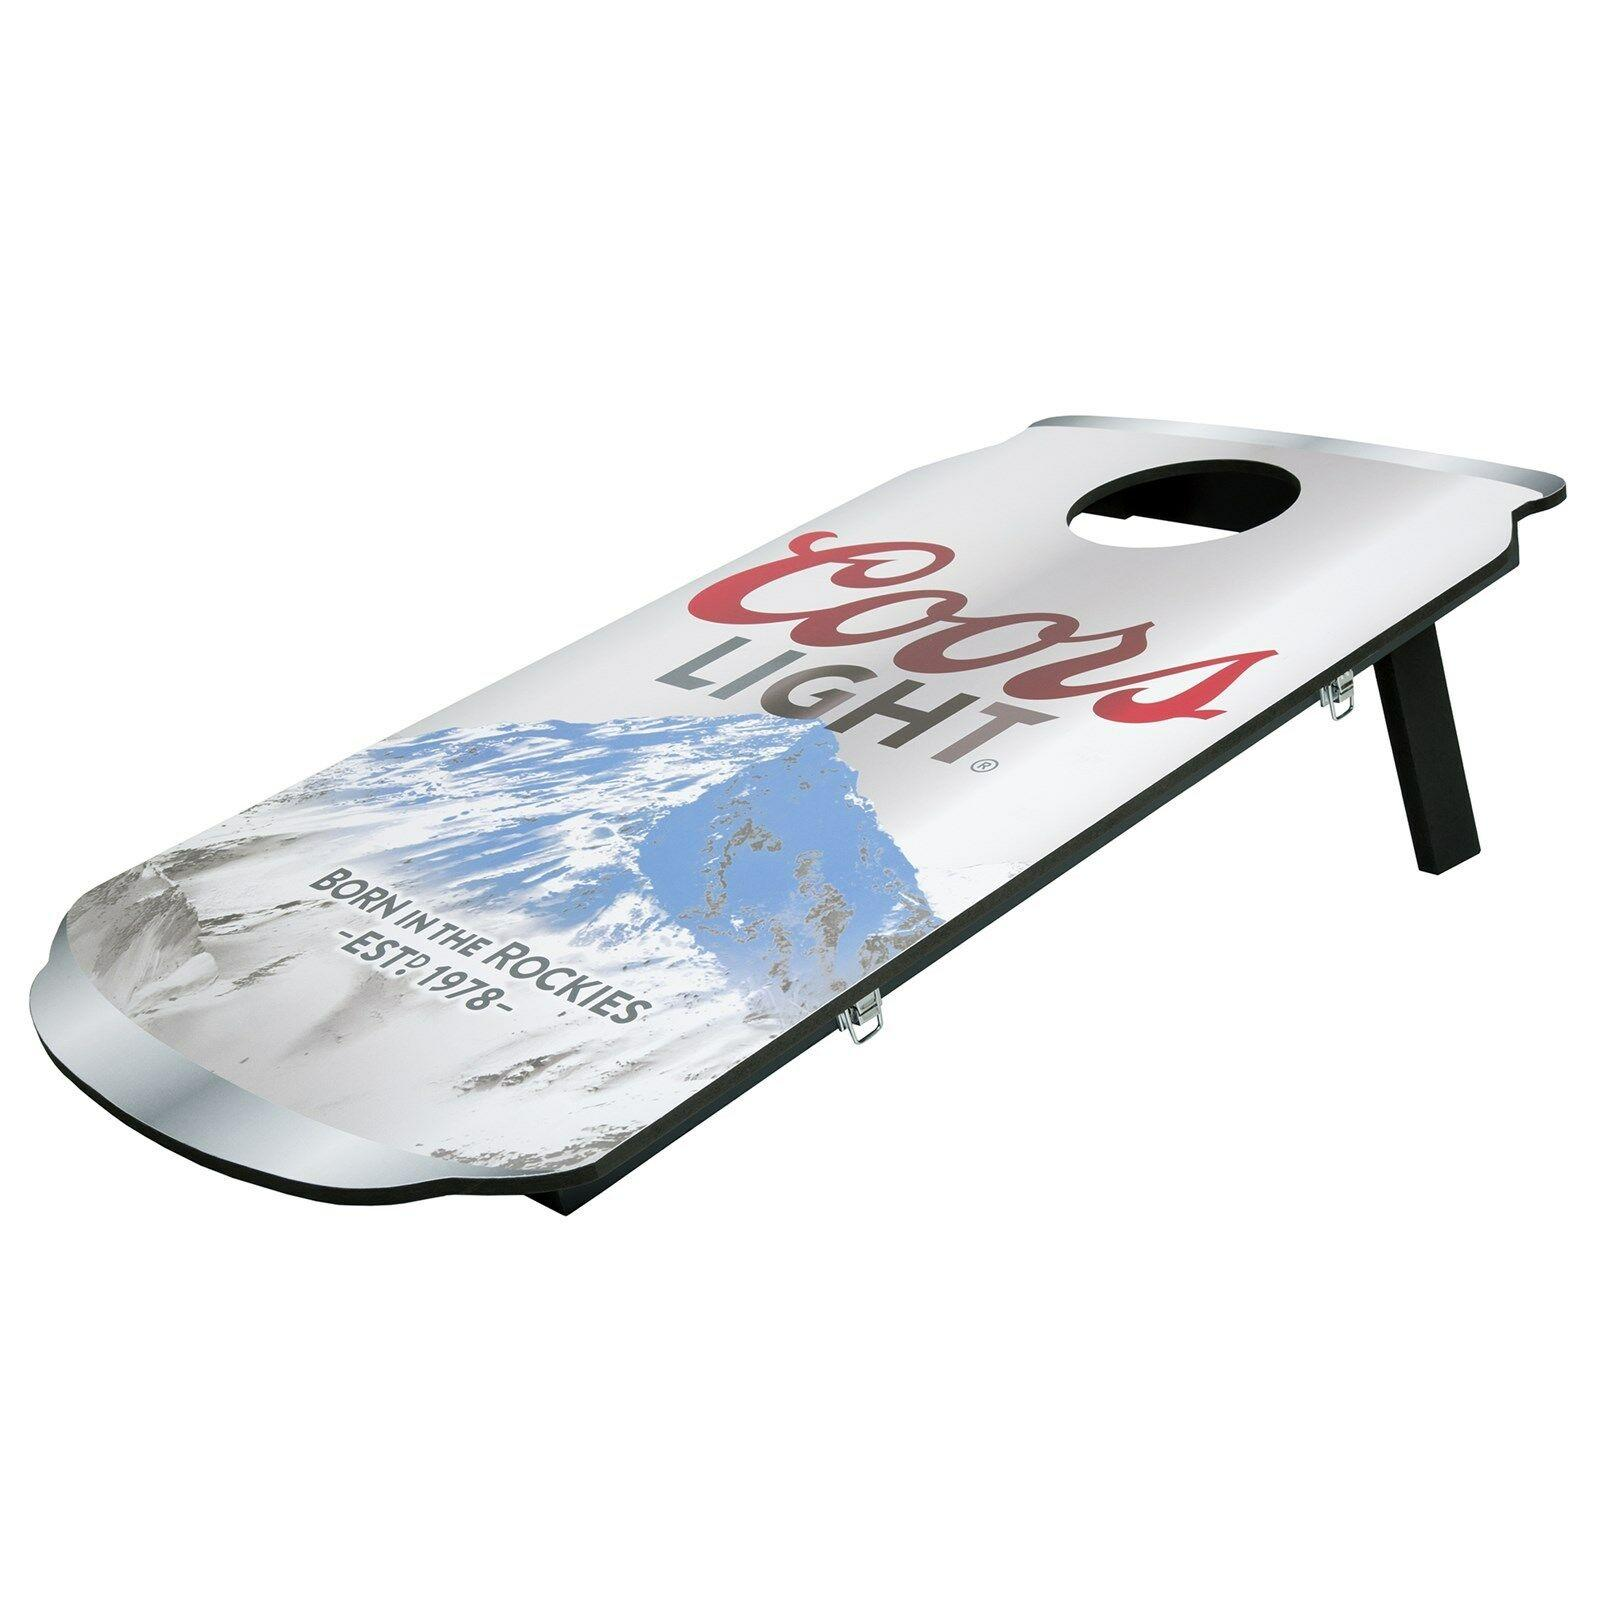 Coors Lite Can Bean Bag Toss Cornhole Corn Hole Game Boards Travel Portable